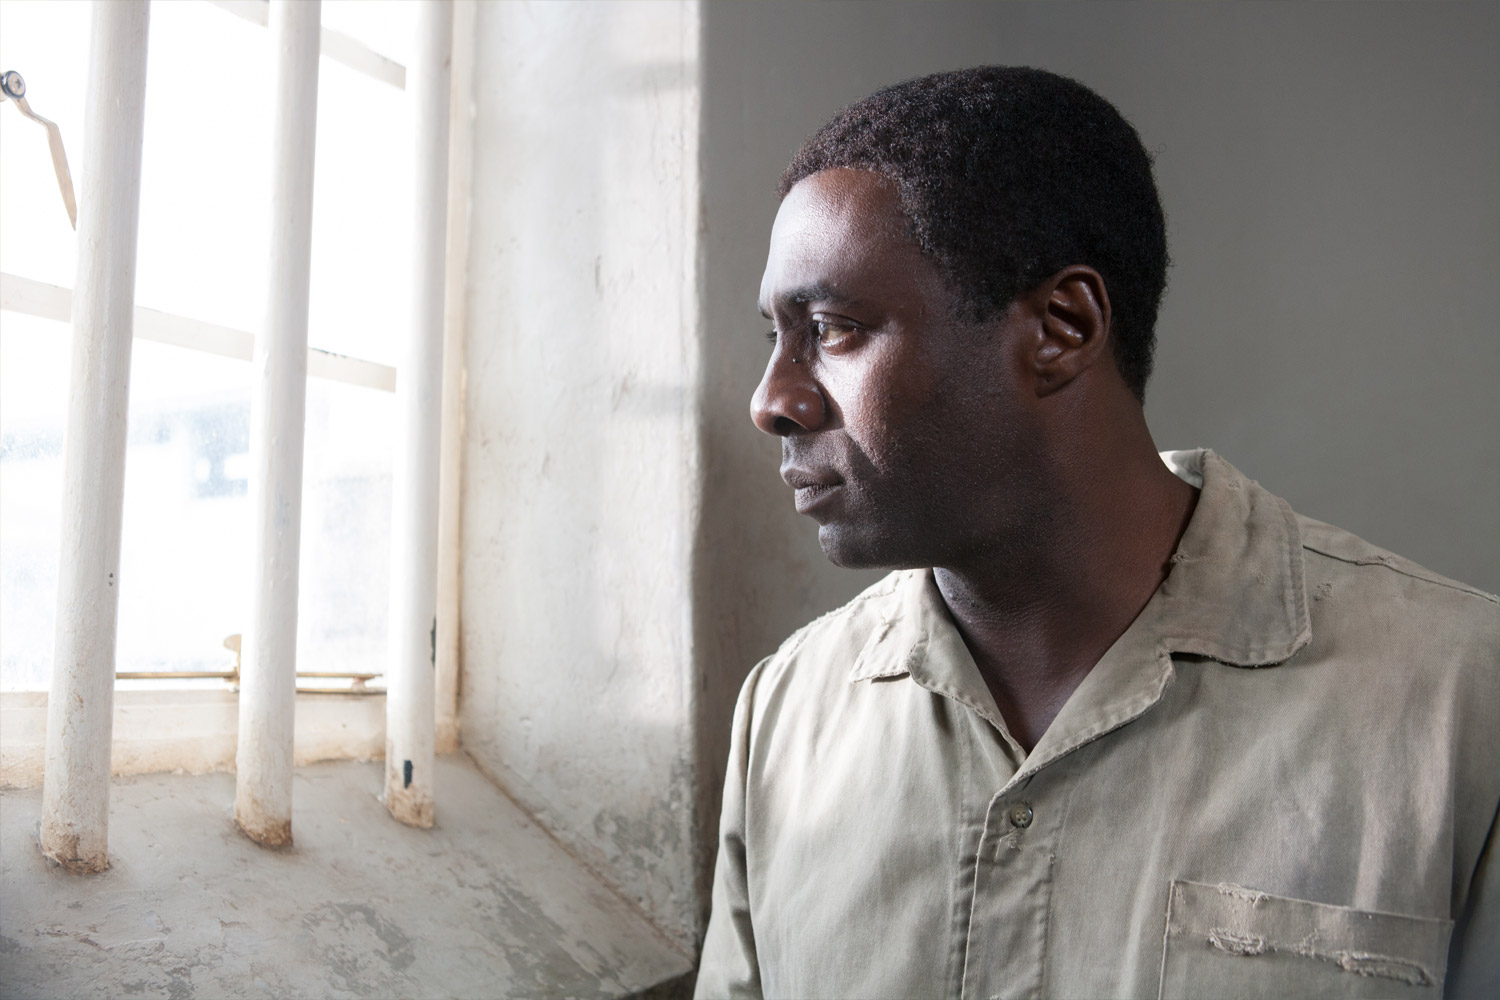 I dris Elba plays the father of South African freedom, with Naomie Harris as his impassioned wife in Justin Chadwick's epic biographical portrait.